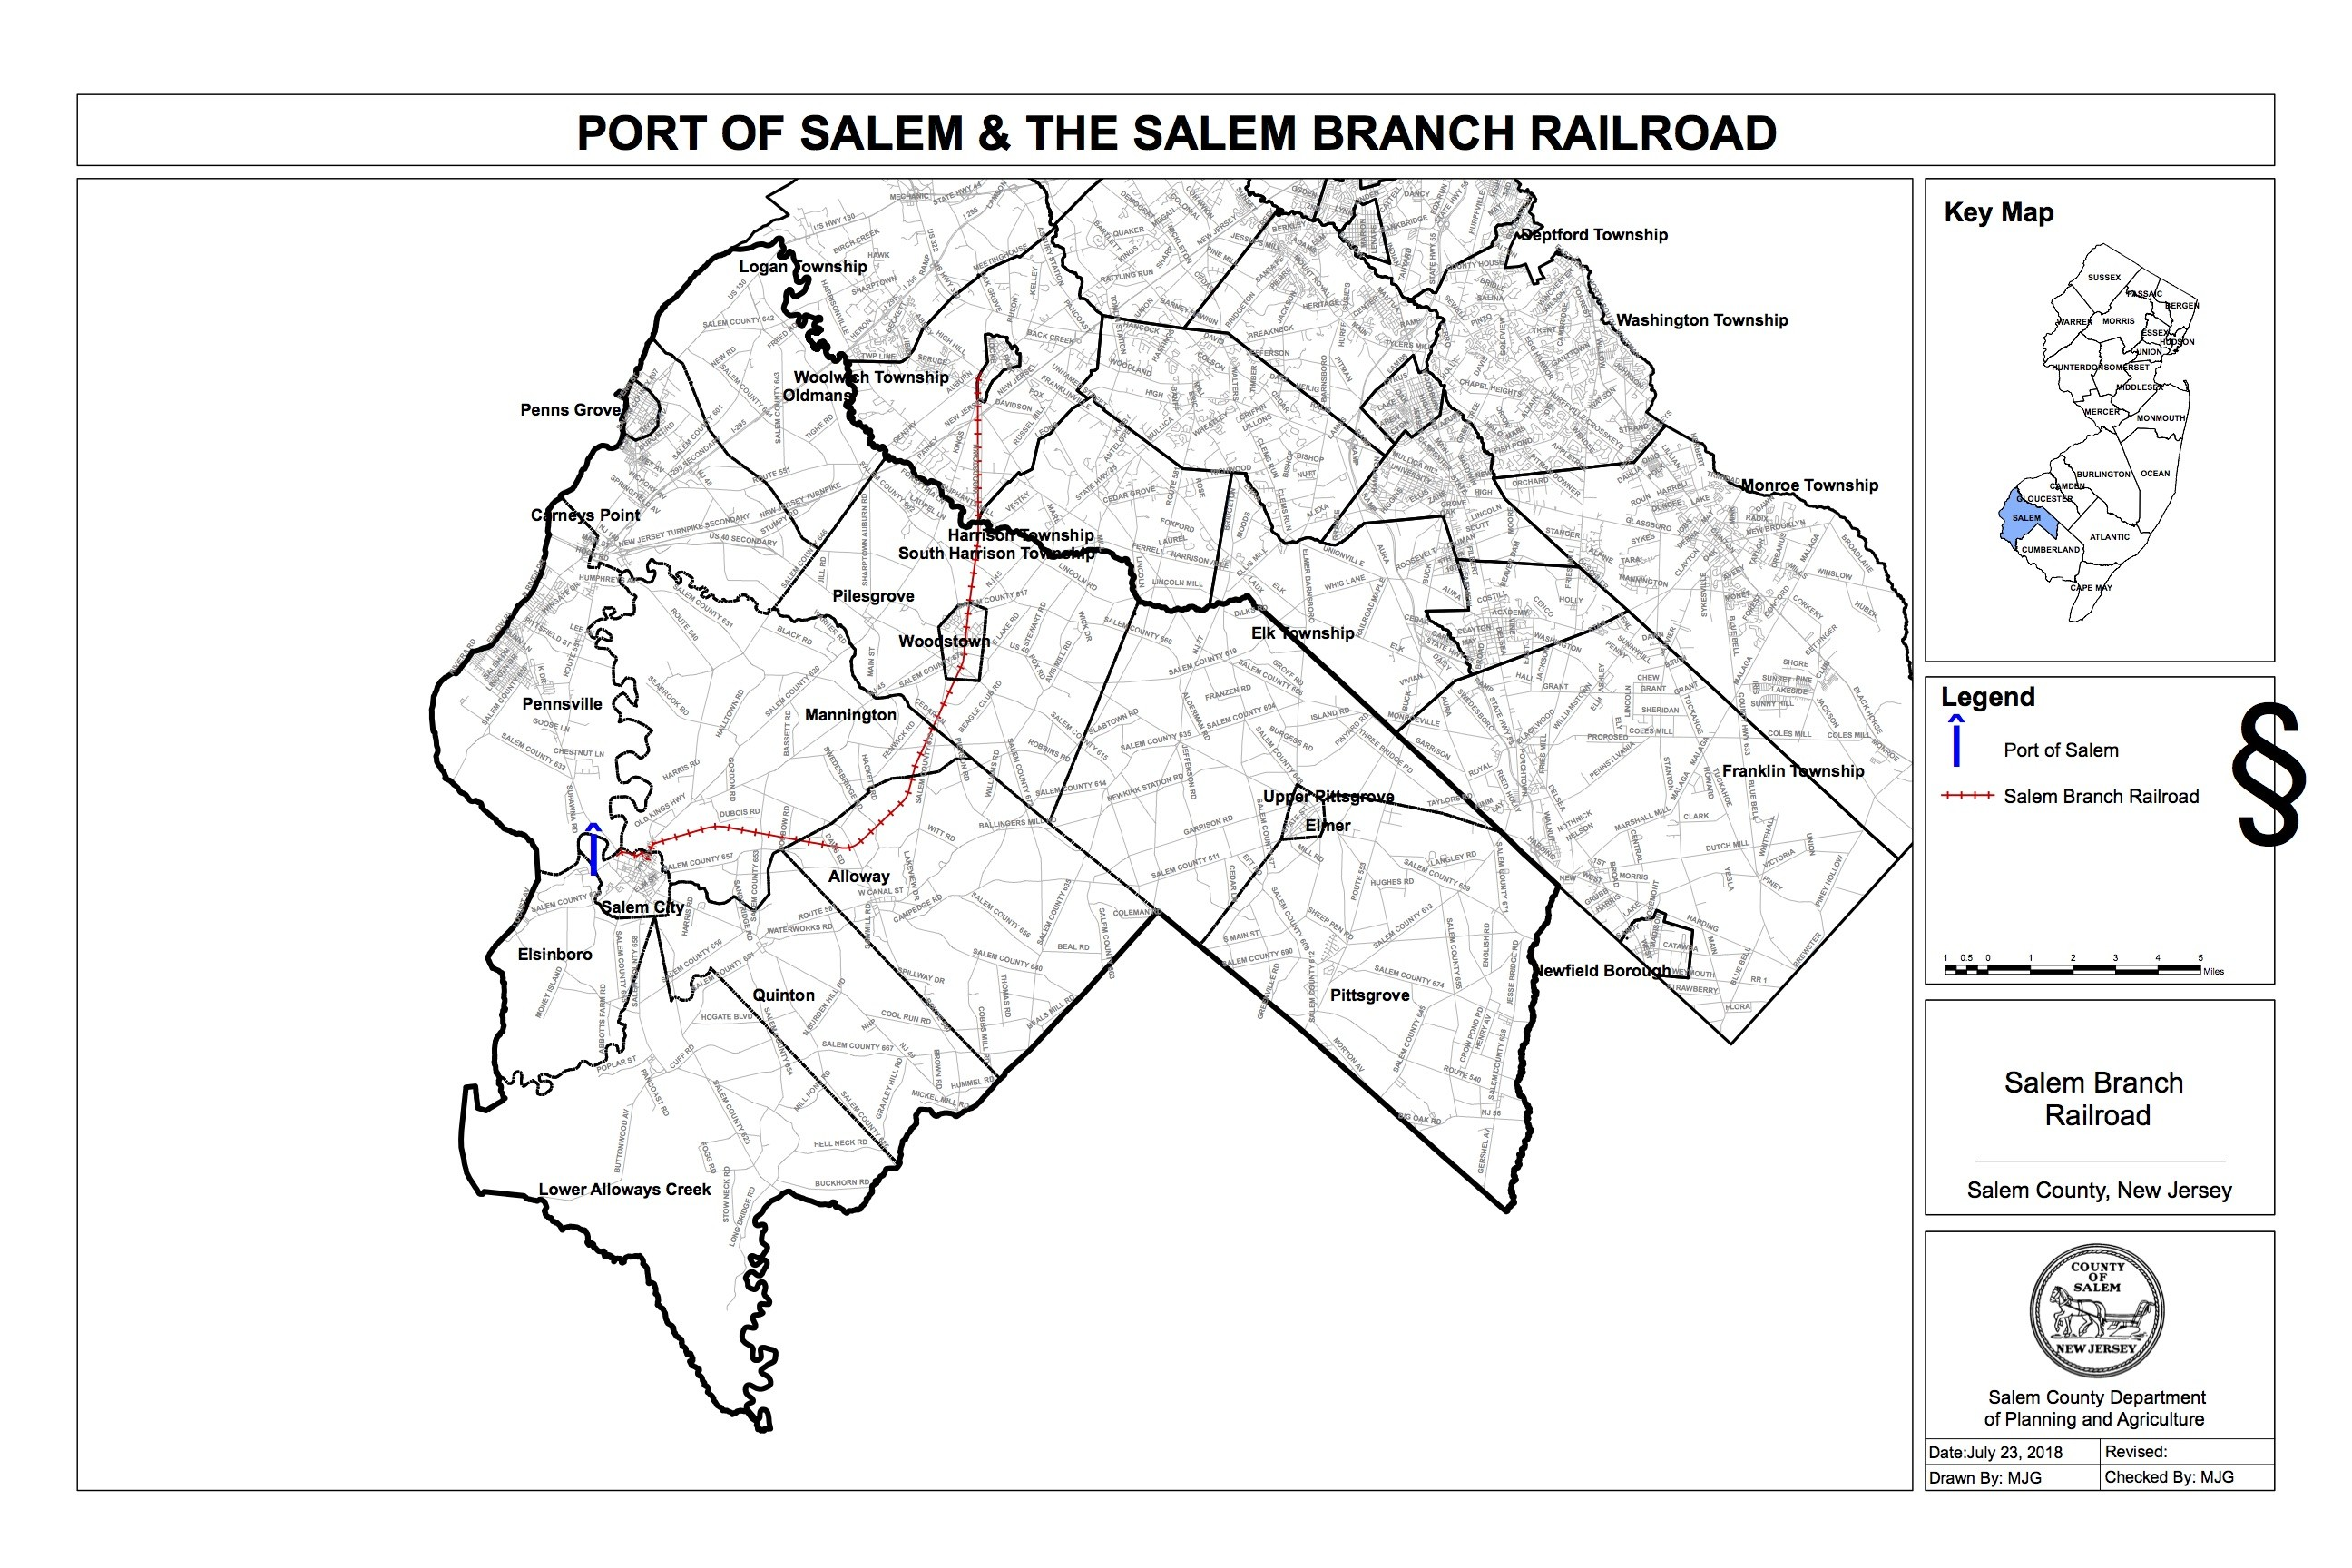 SalemBranchRailroad - Redevelopment Areas